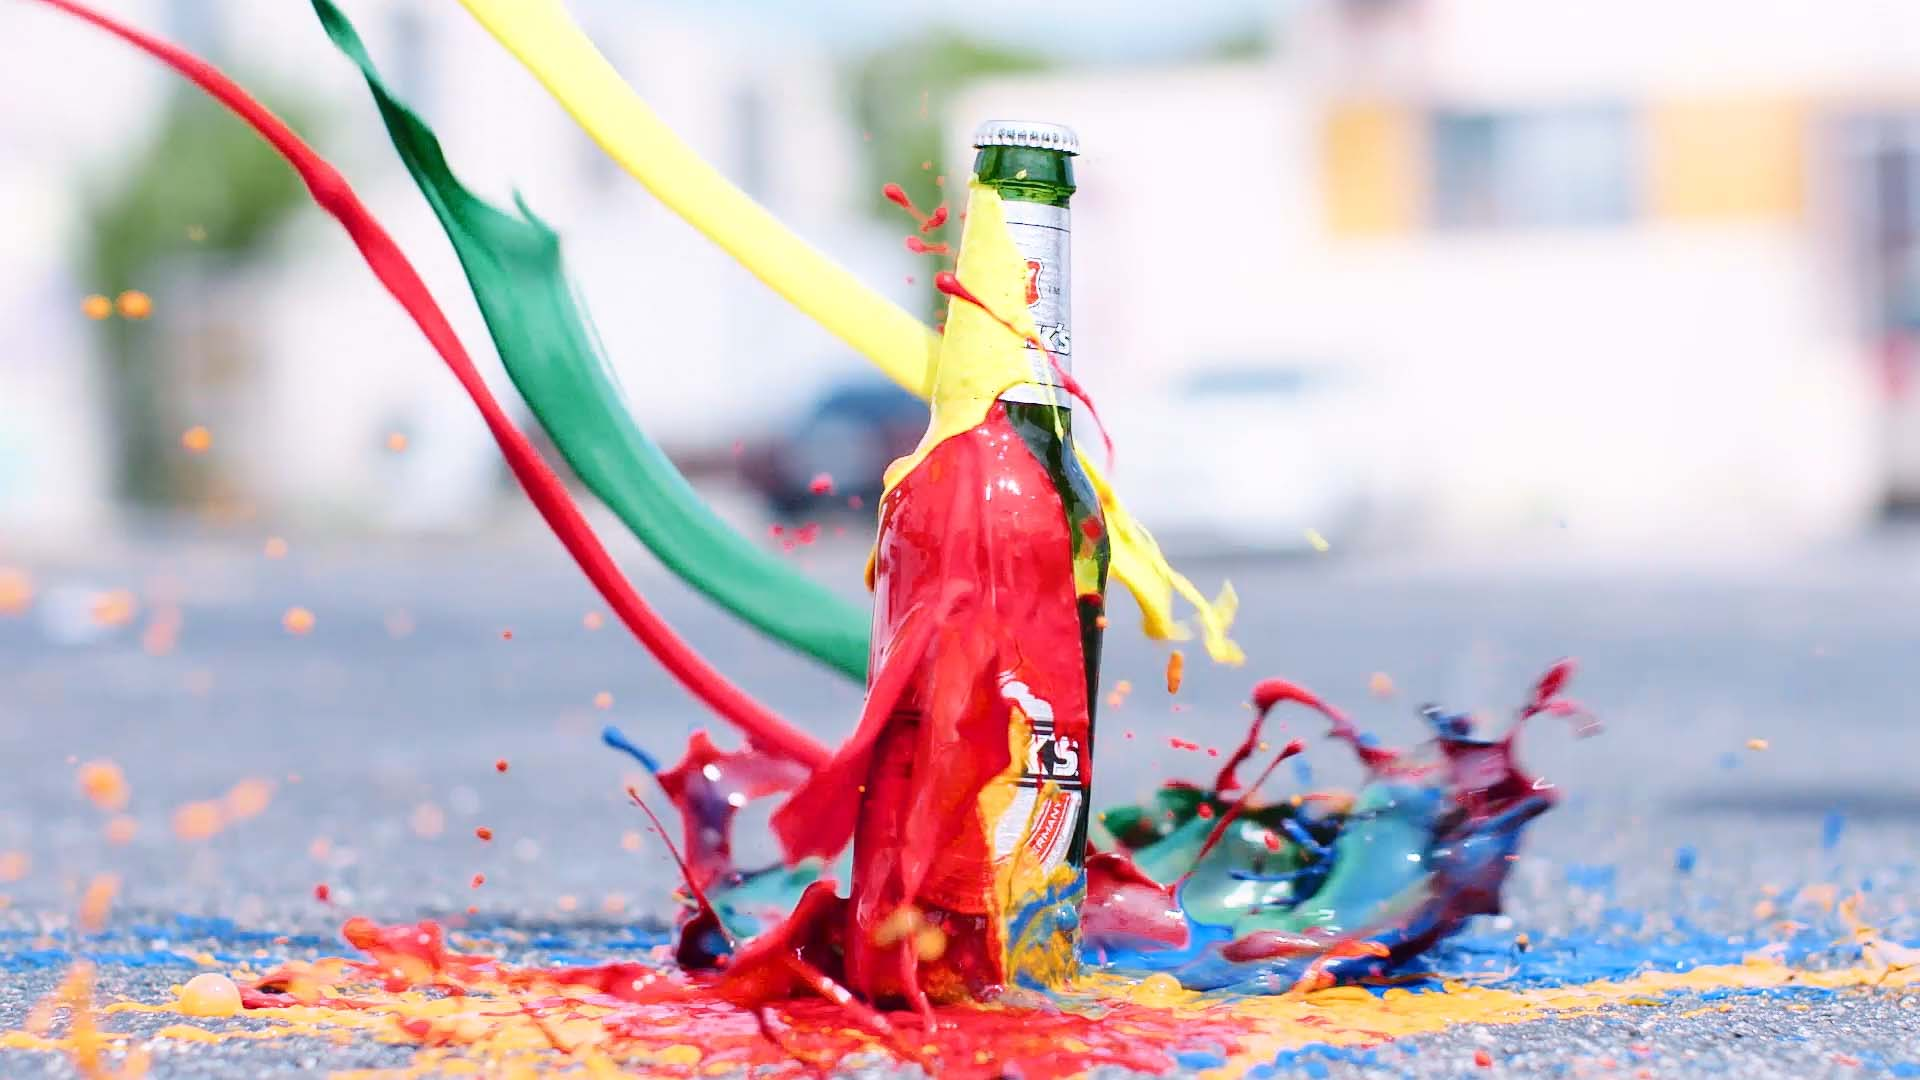 BECKS PAINT SPLASH.jpg